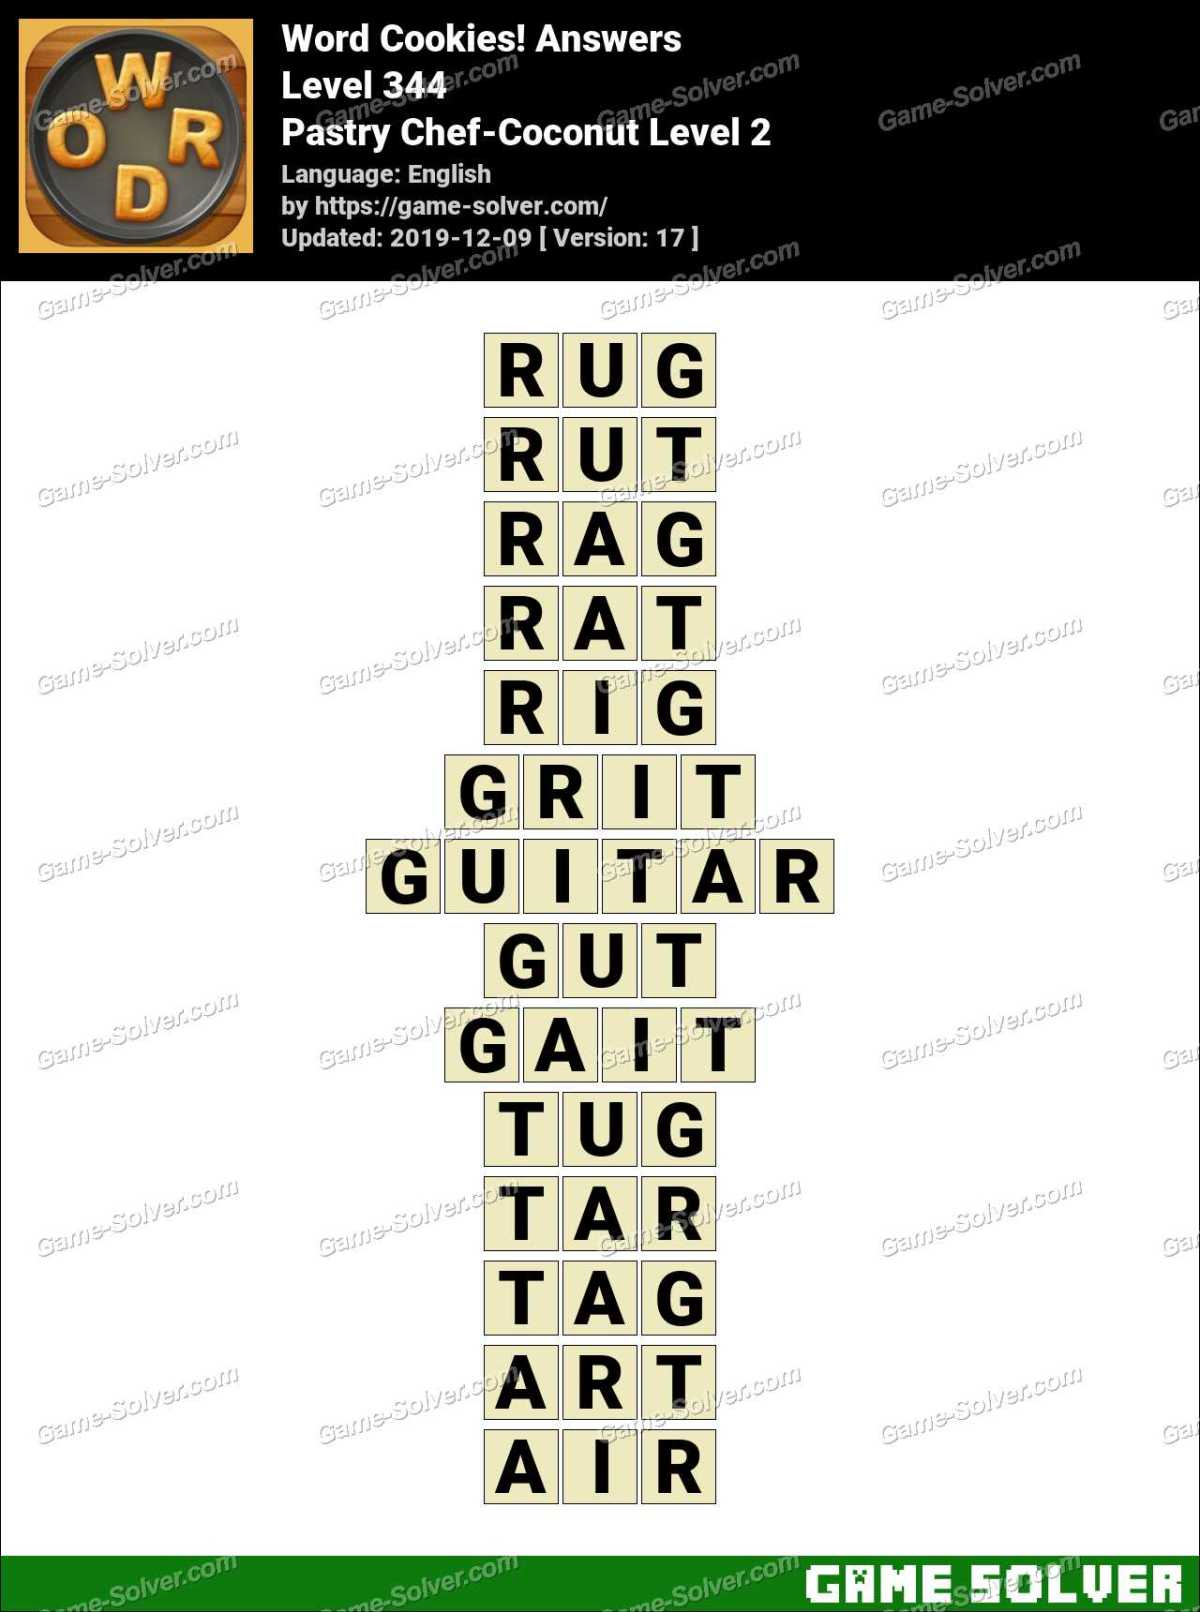 Word Cookies Pastry Chef-Coconut Level 2 Answers